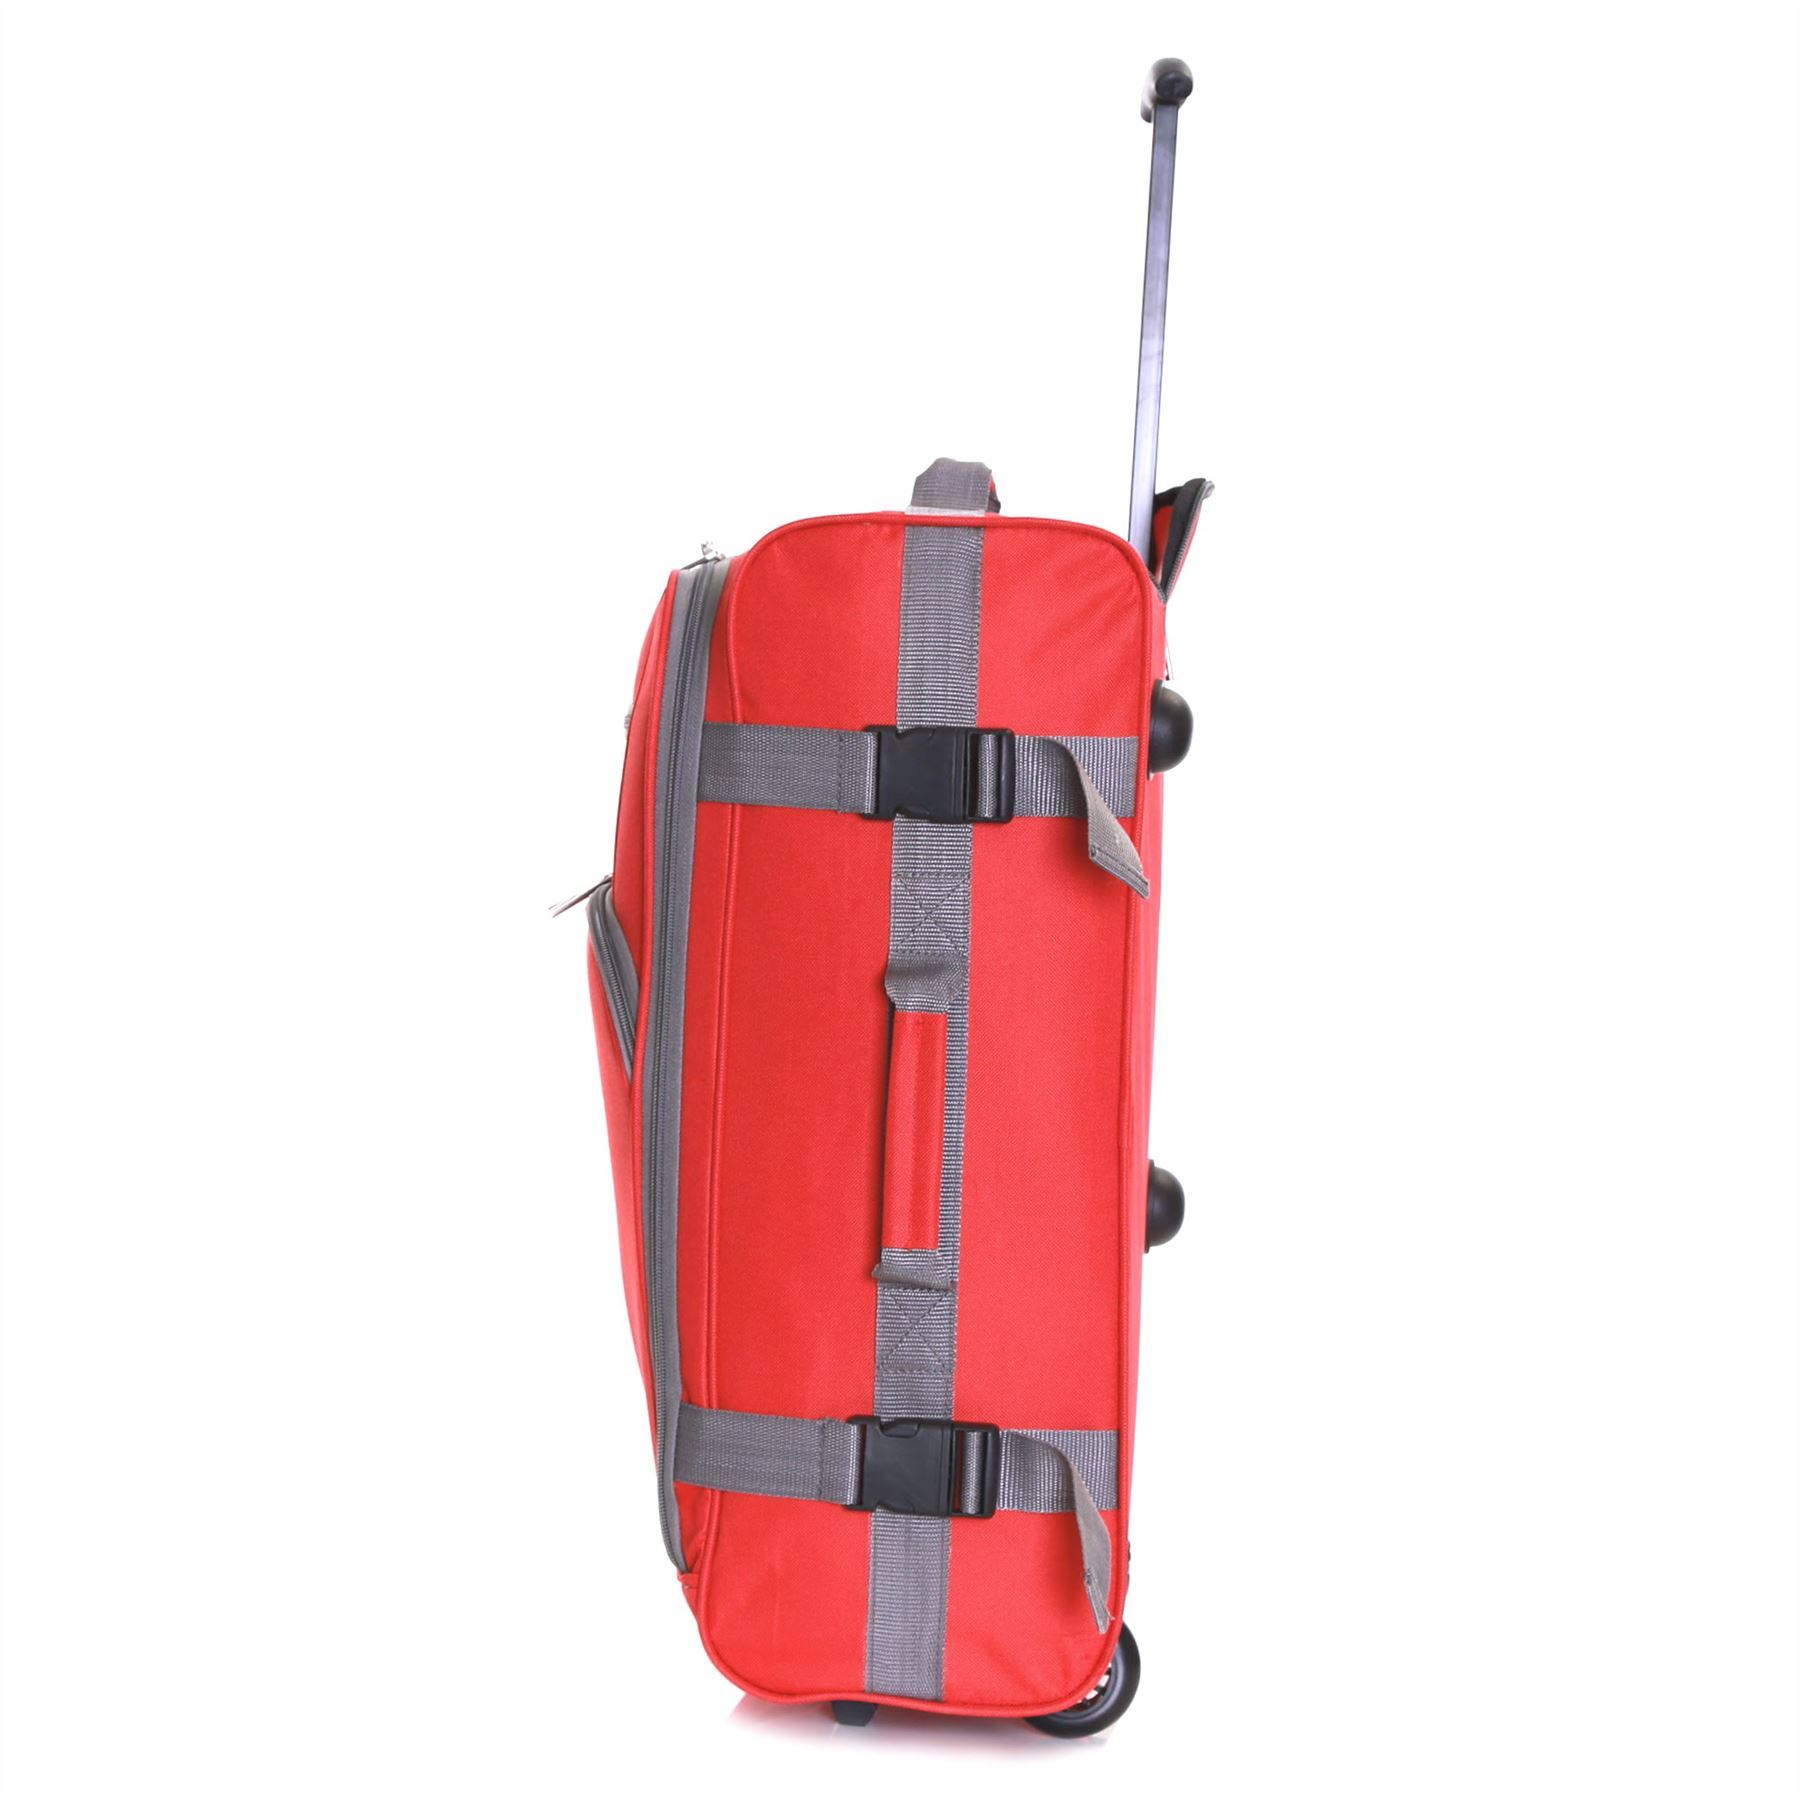 Ryanair-Easyjet-Set-of-2-Cabin-Approved-Hand-Trolley-Suitcases-Luggage-Case-Bags thumbnail 32